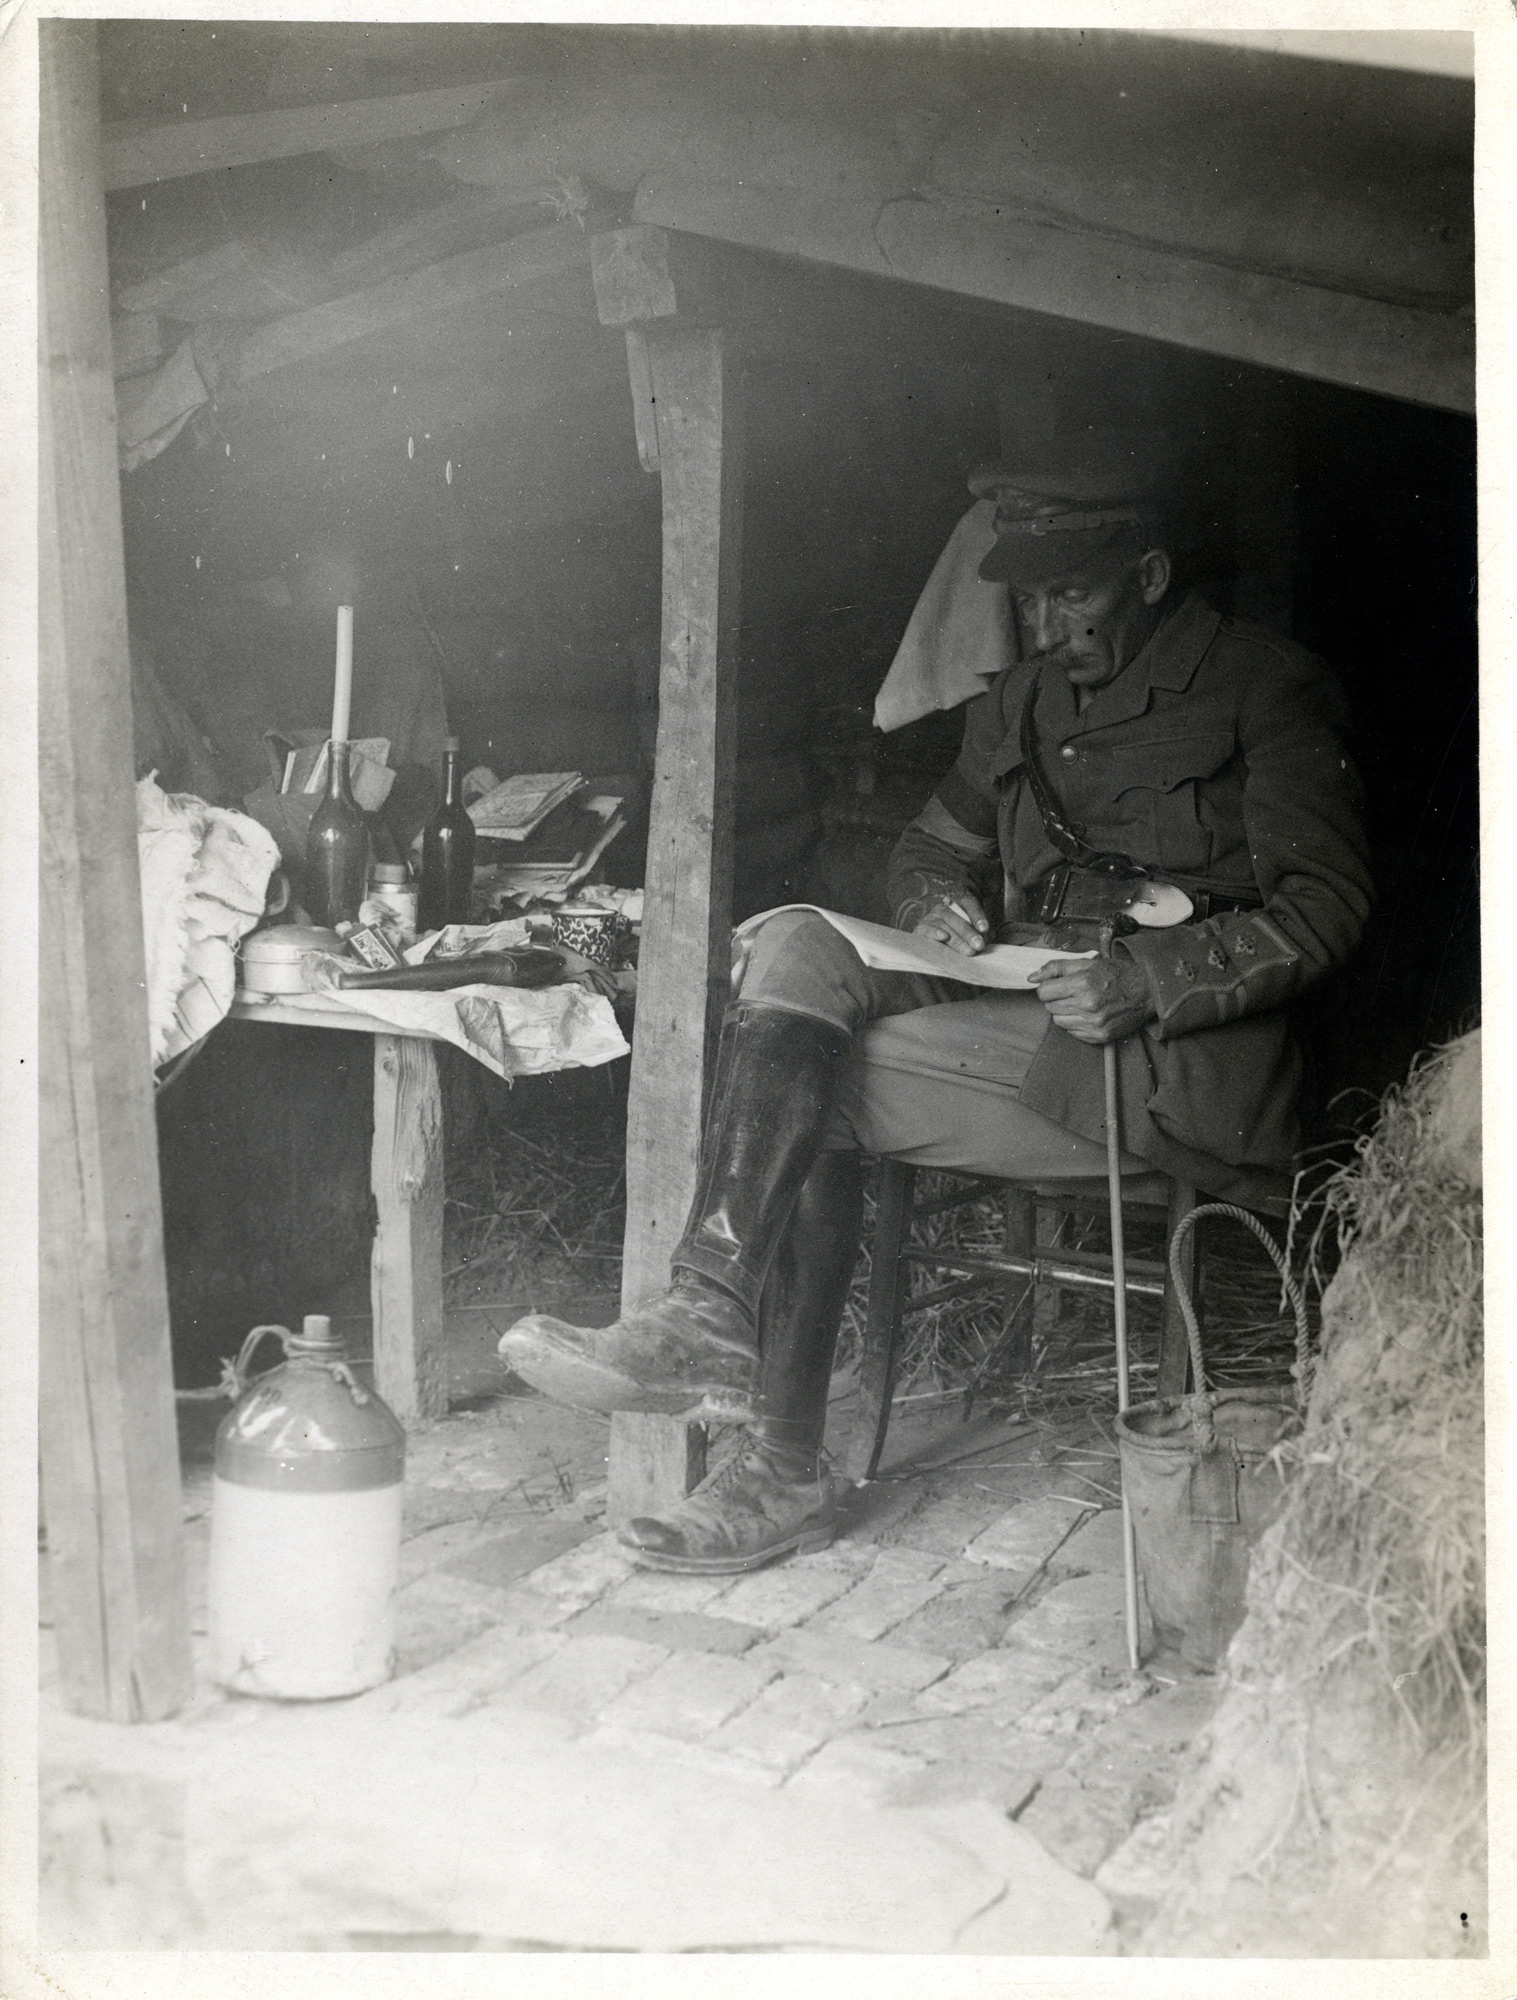 A British officer in his hut dug into the side of a trench, 1915. The hut has walls reinforced with sandbags, hay bales to protect against shell attacks, and a brick floor.